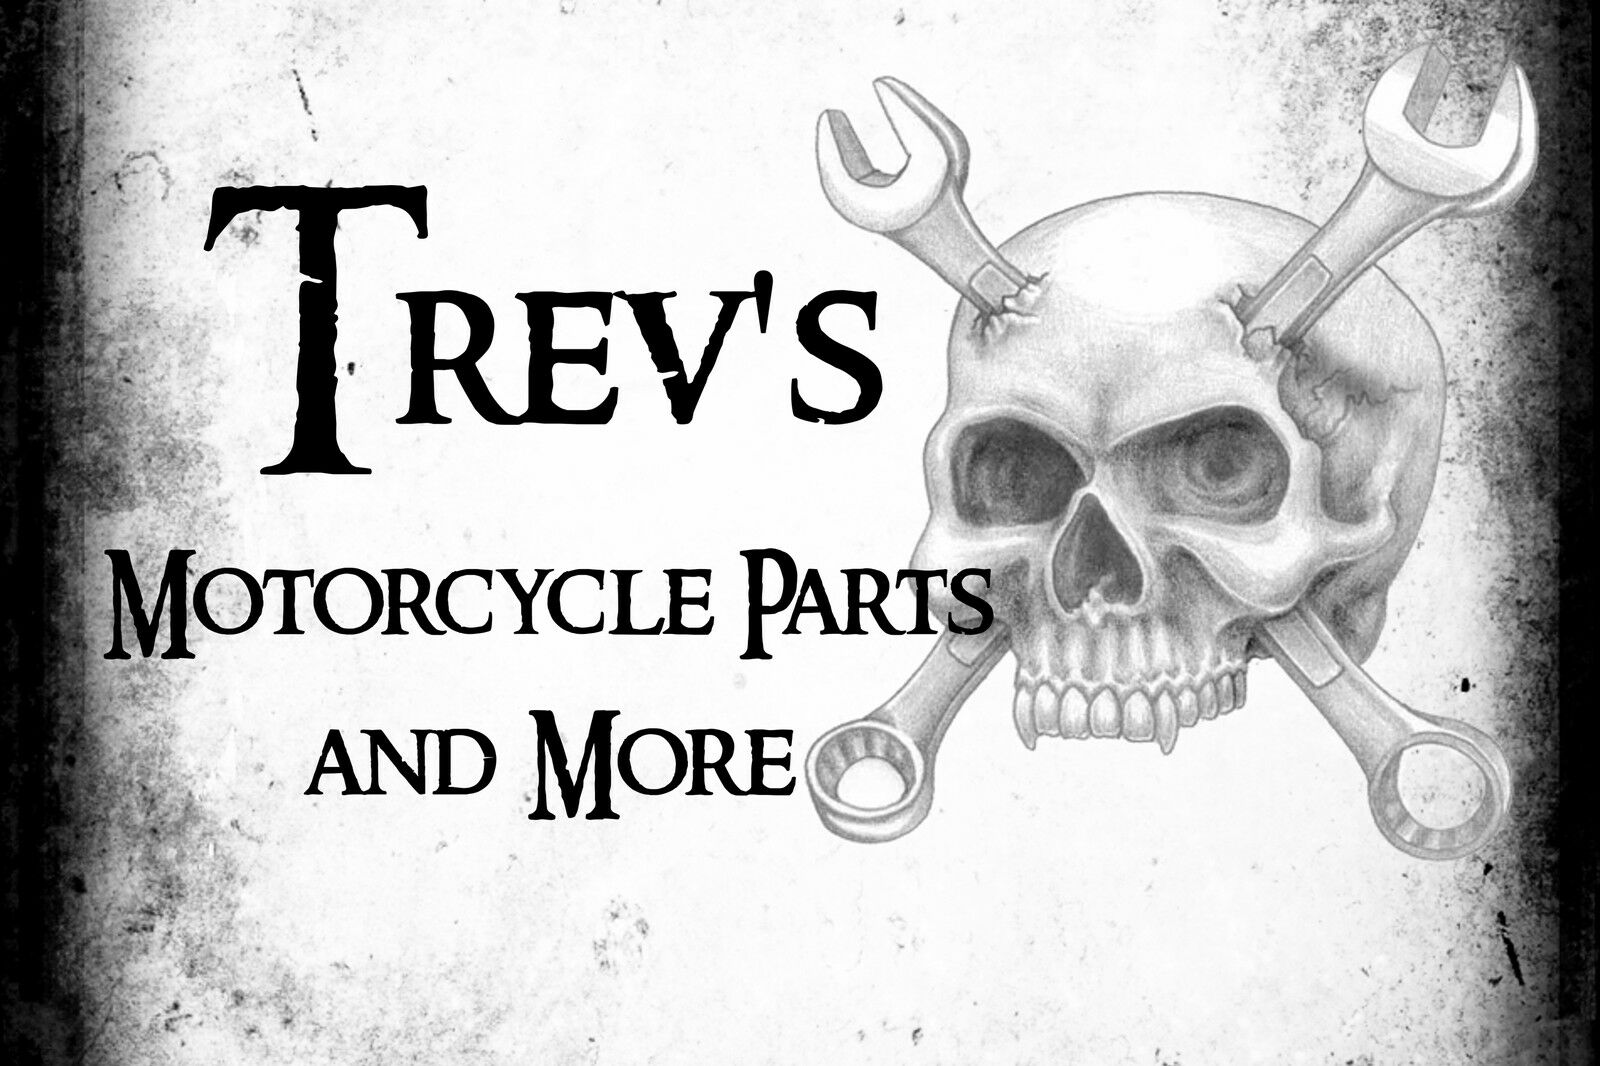 Trev s Motorcycle Parts and More